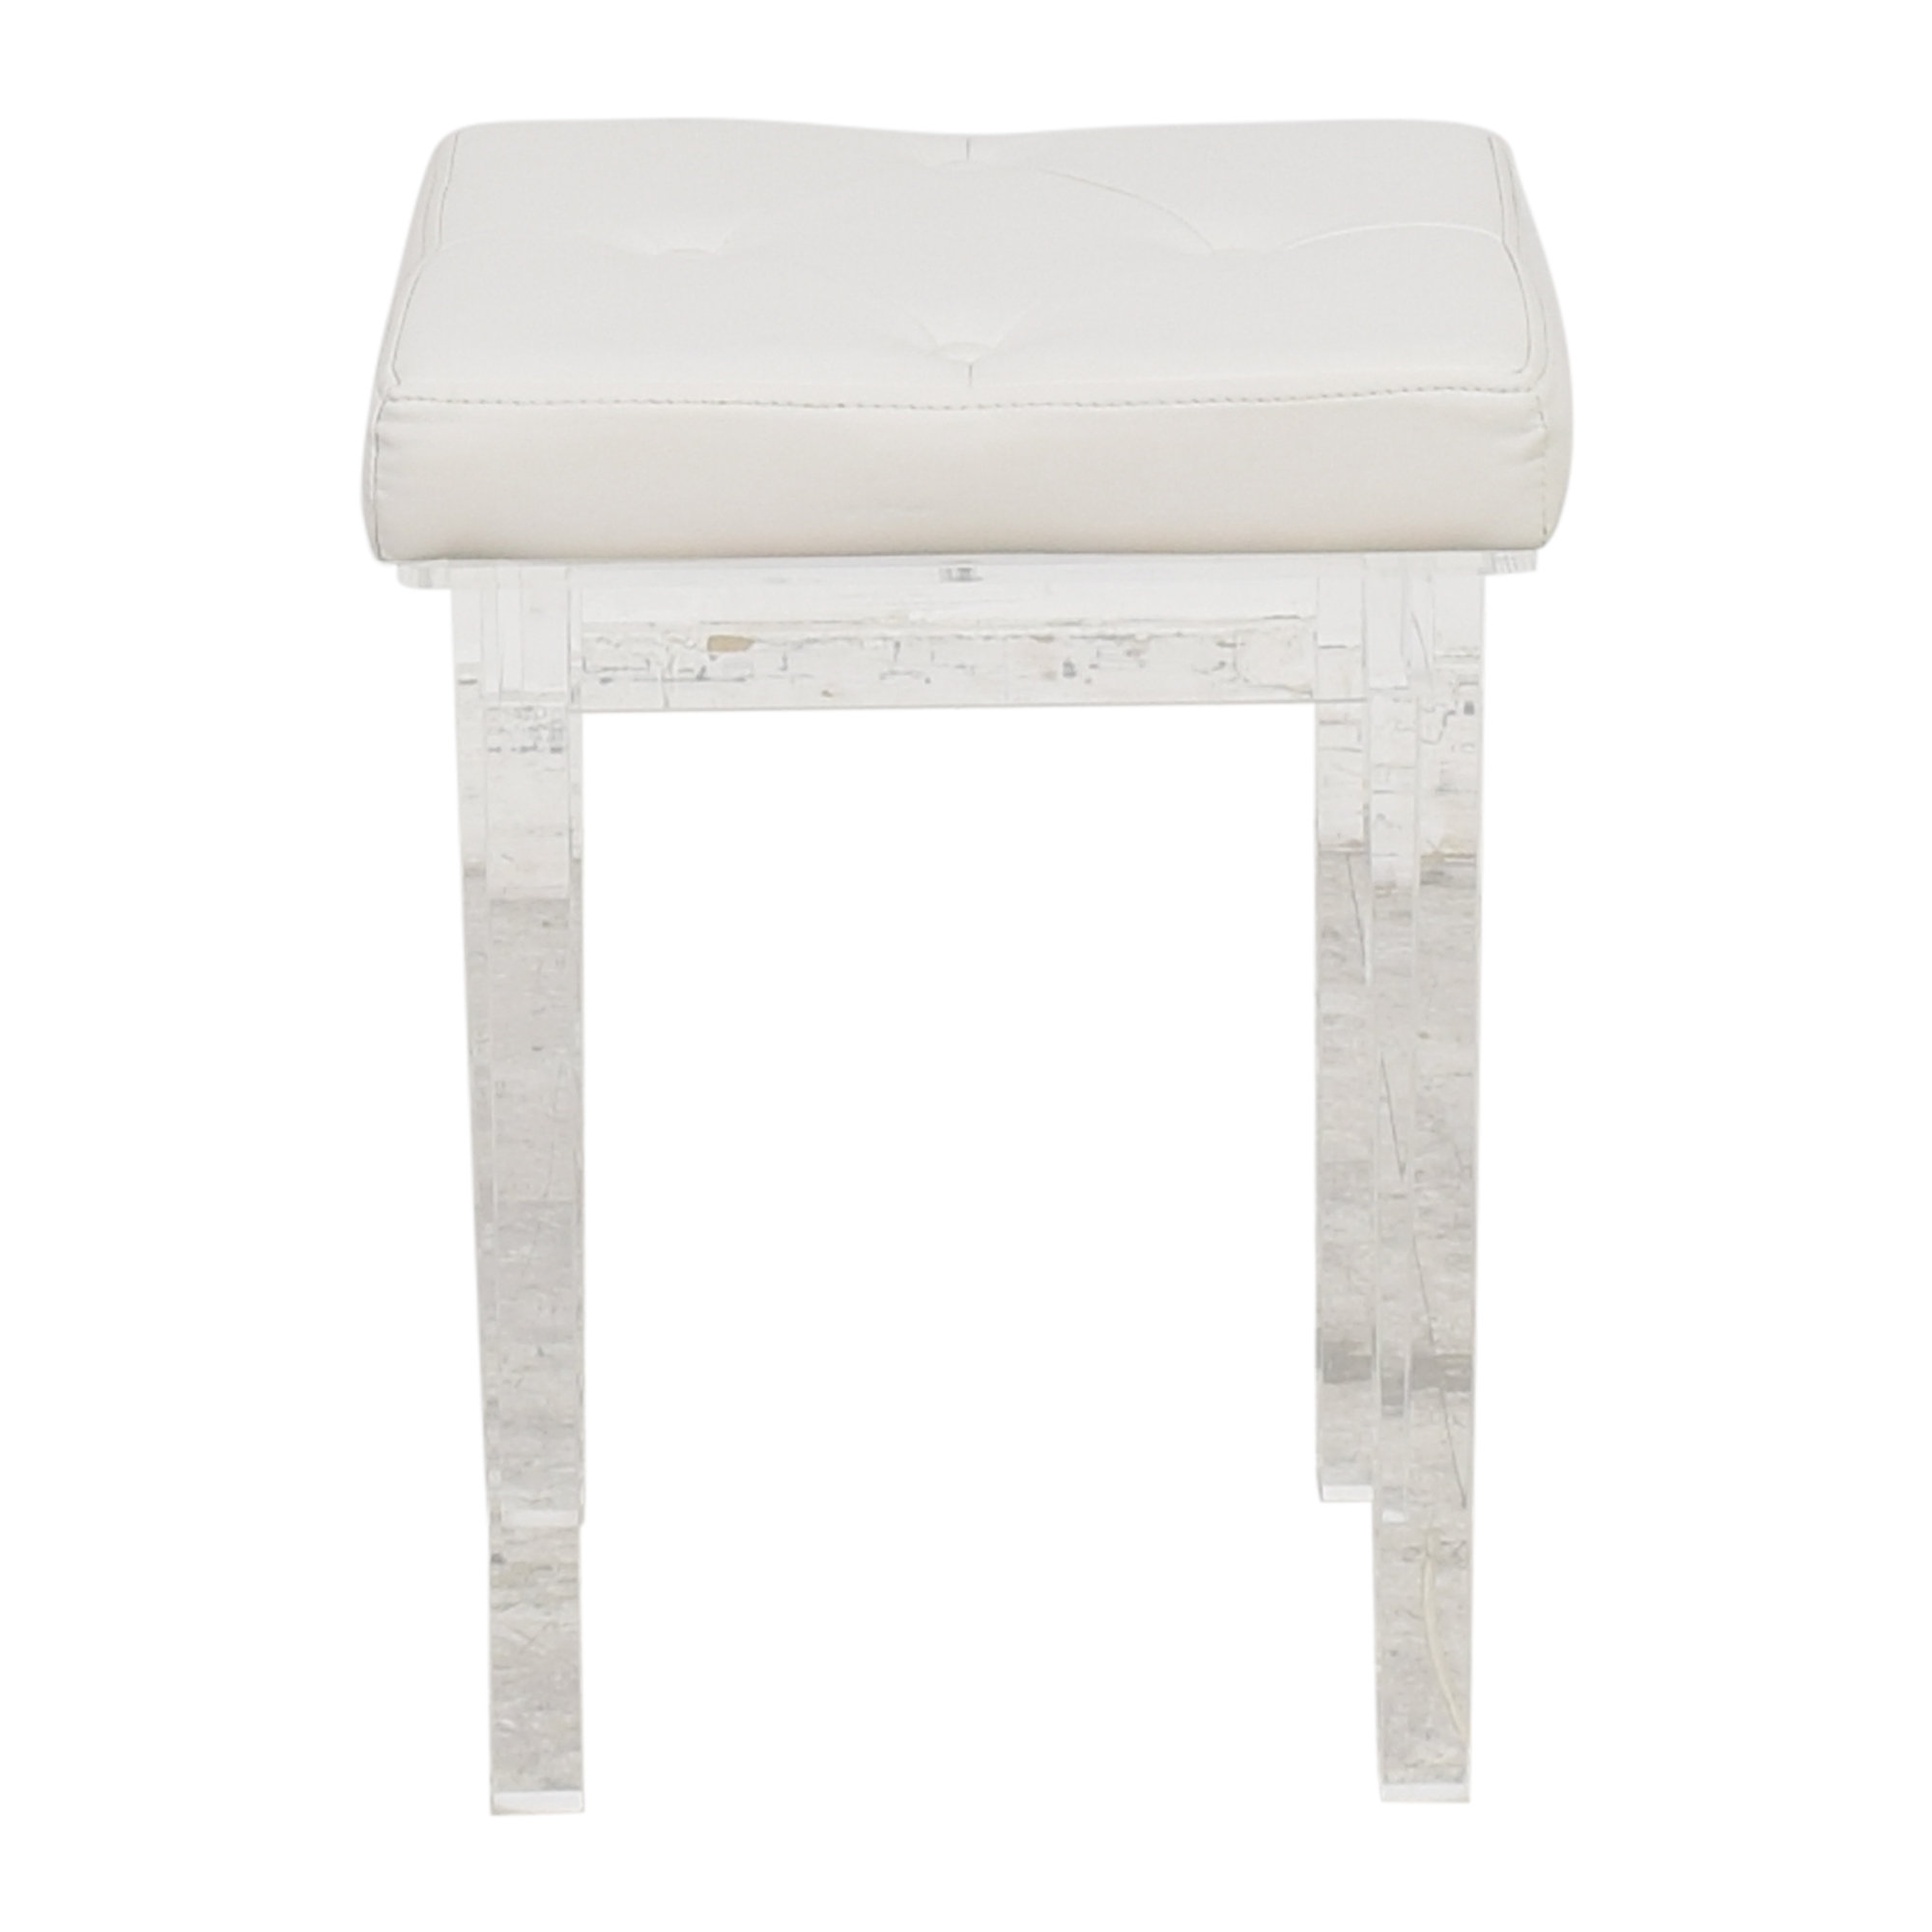 Square Vanity Bench used